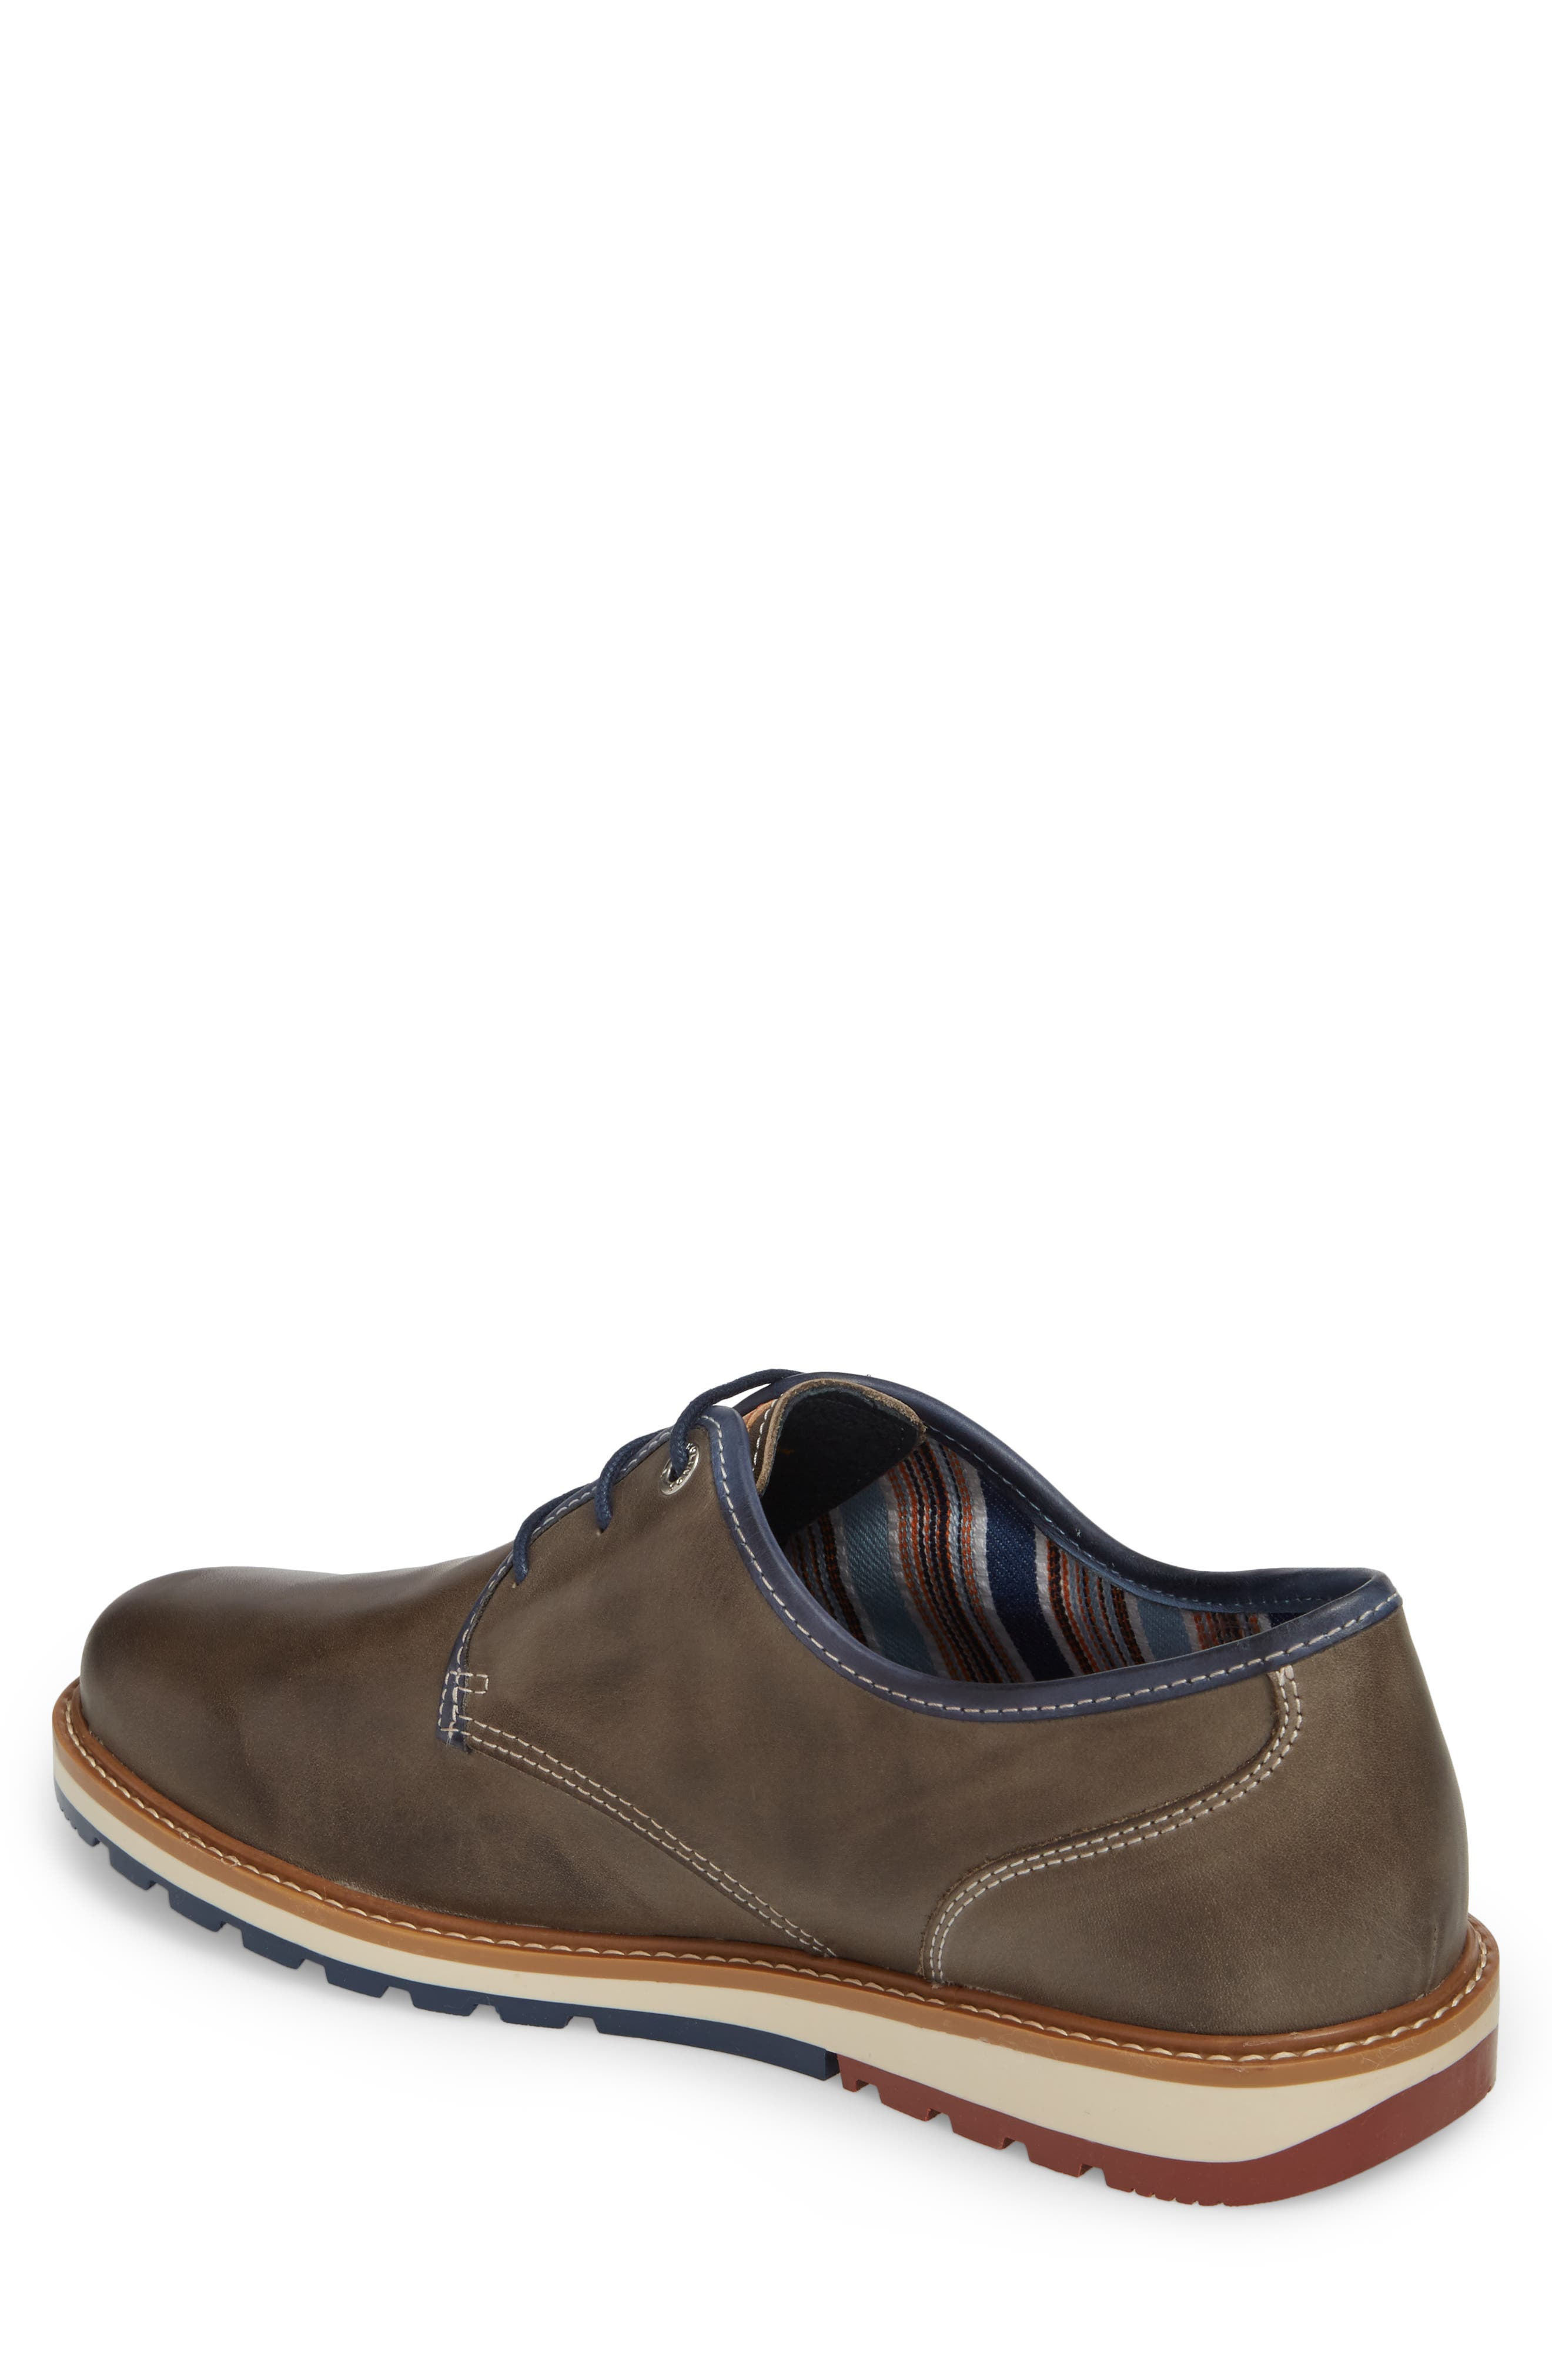 Berna Plain Toe Oxford,                             Alternate thumbnail 2, color,                             020